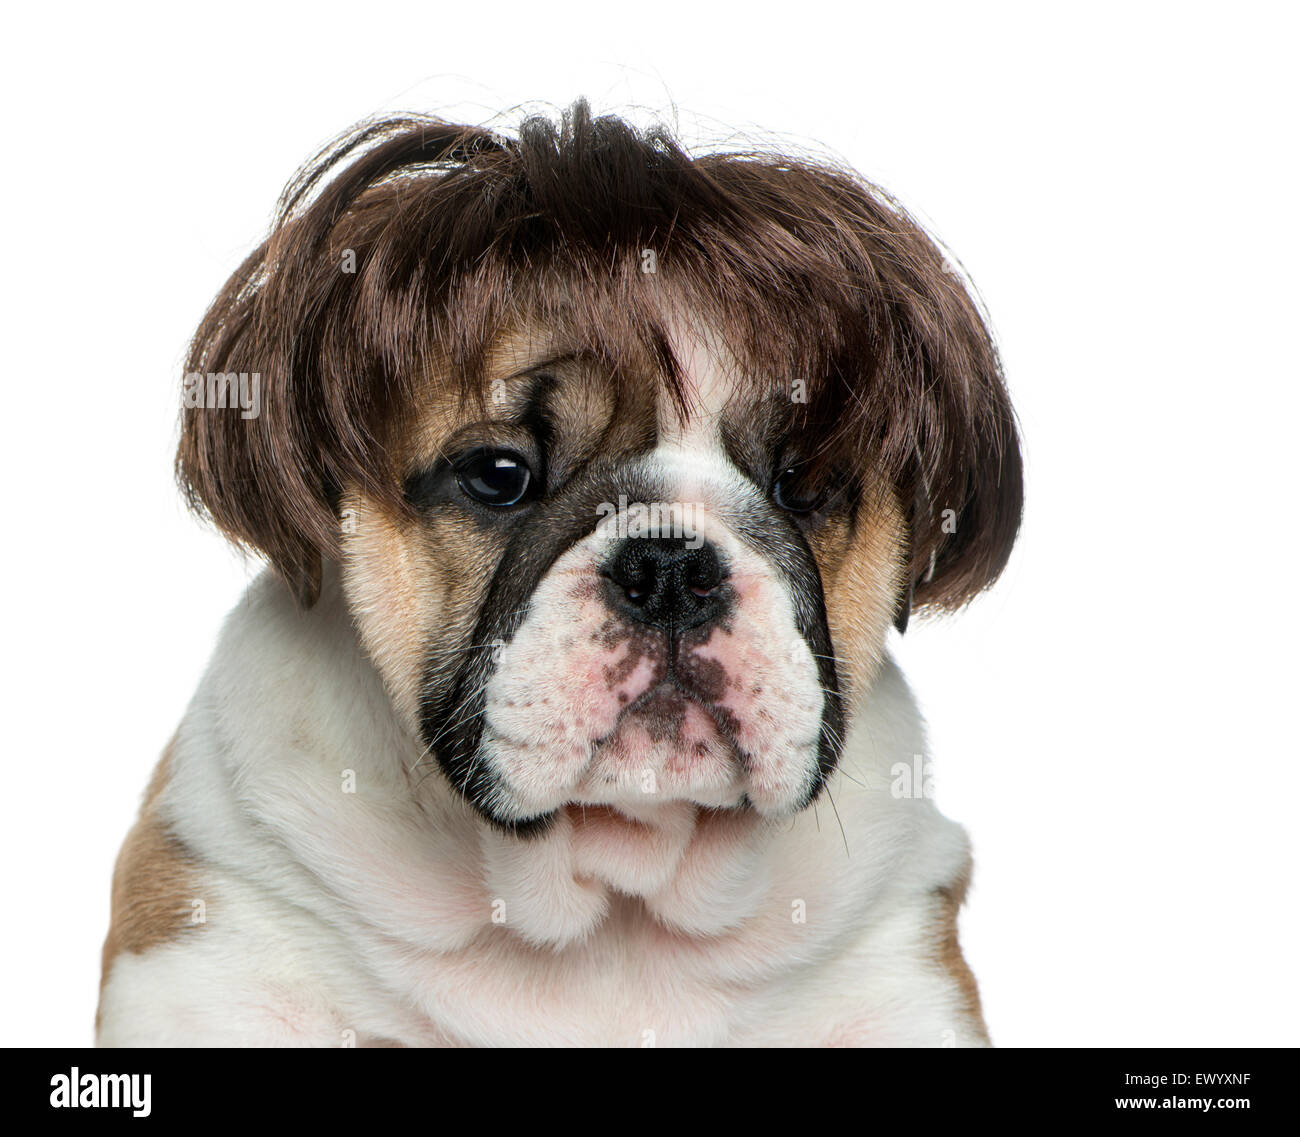 English bulldog puppy wearing a wig in front of white background - Stock Image